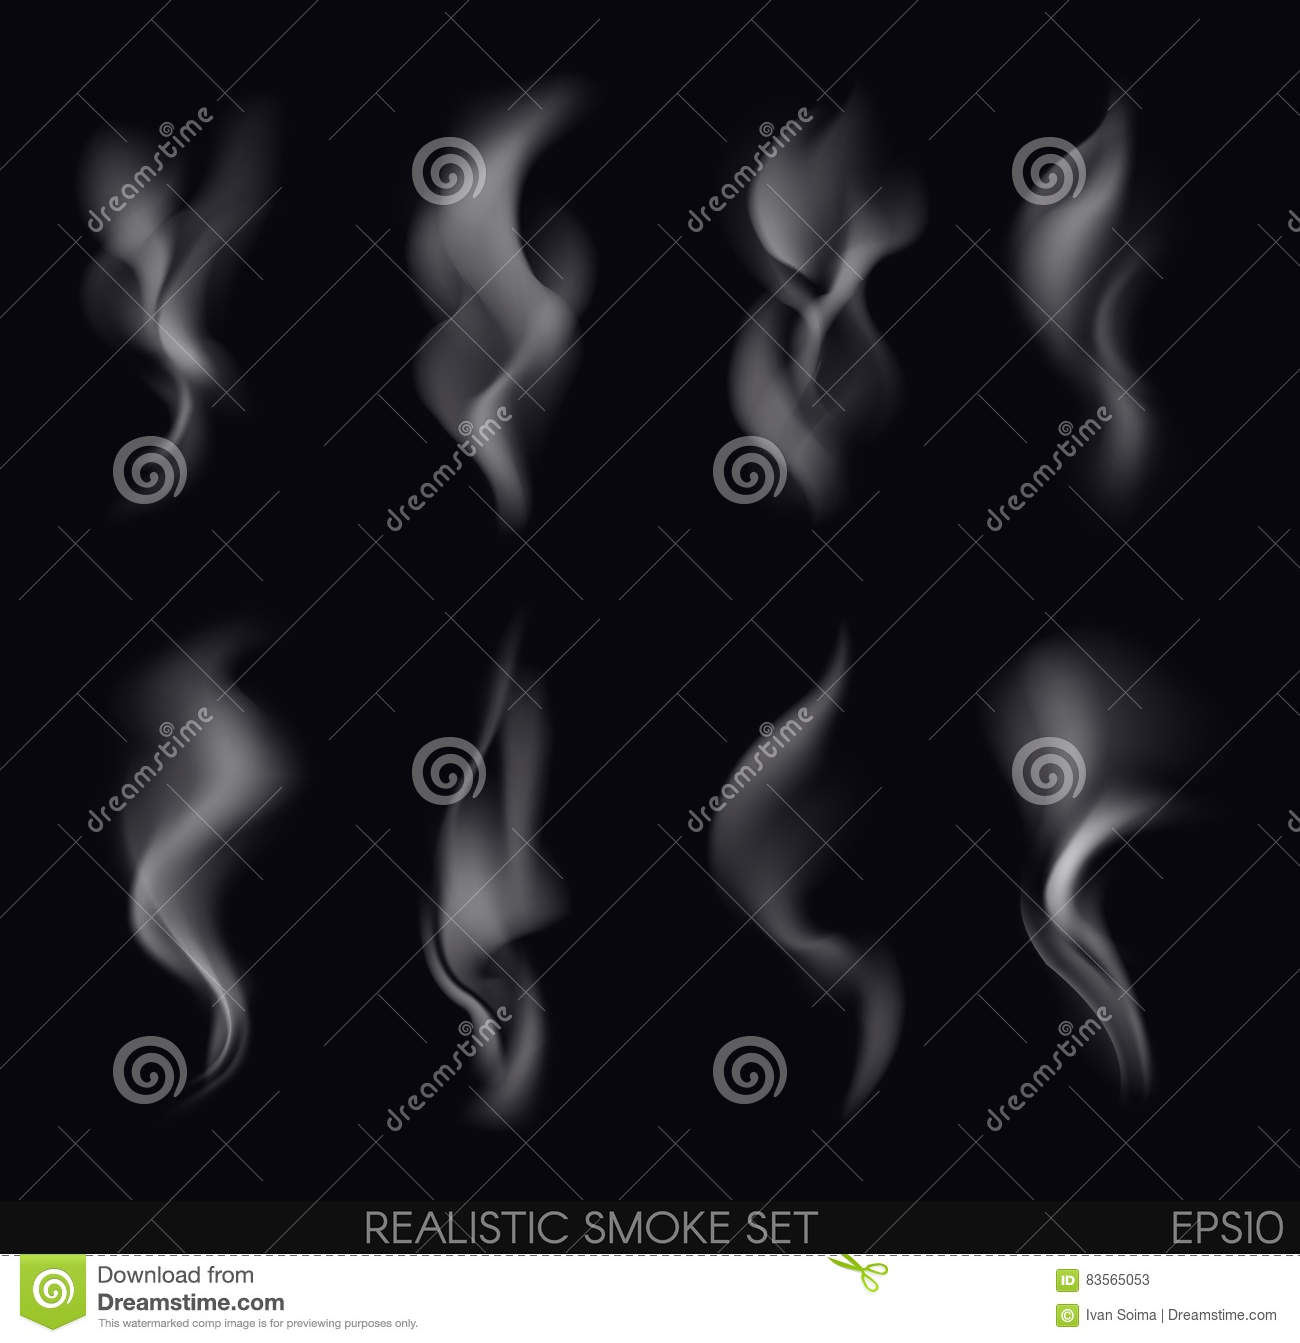 Realistic smoke set stock vector  Illustration of illustration